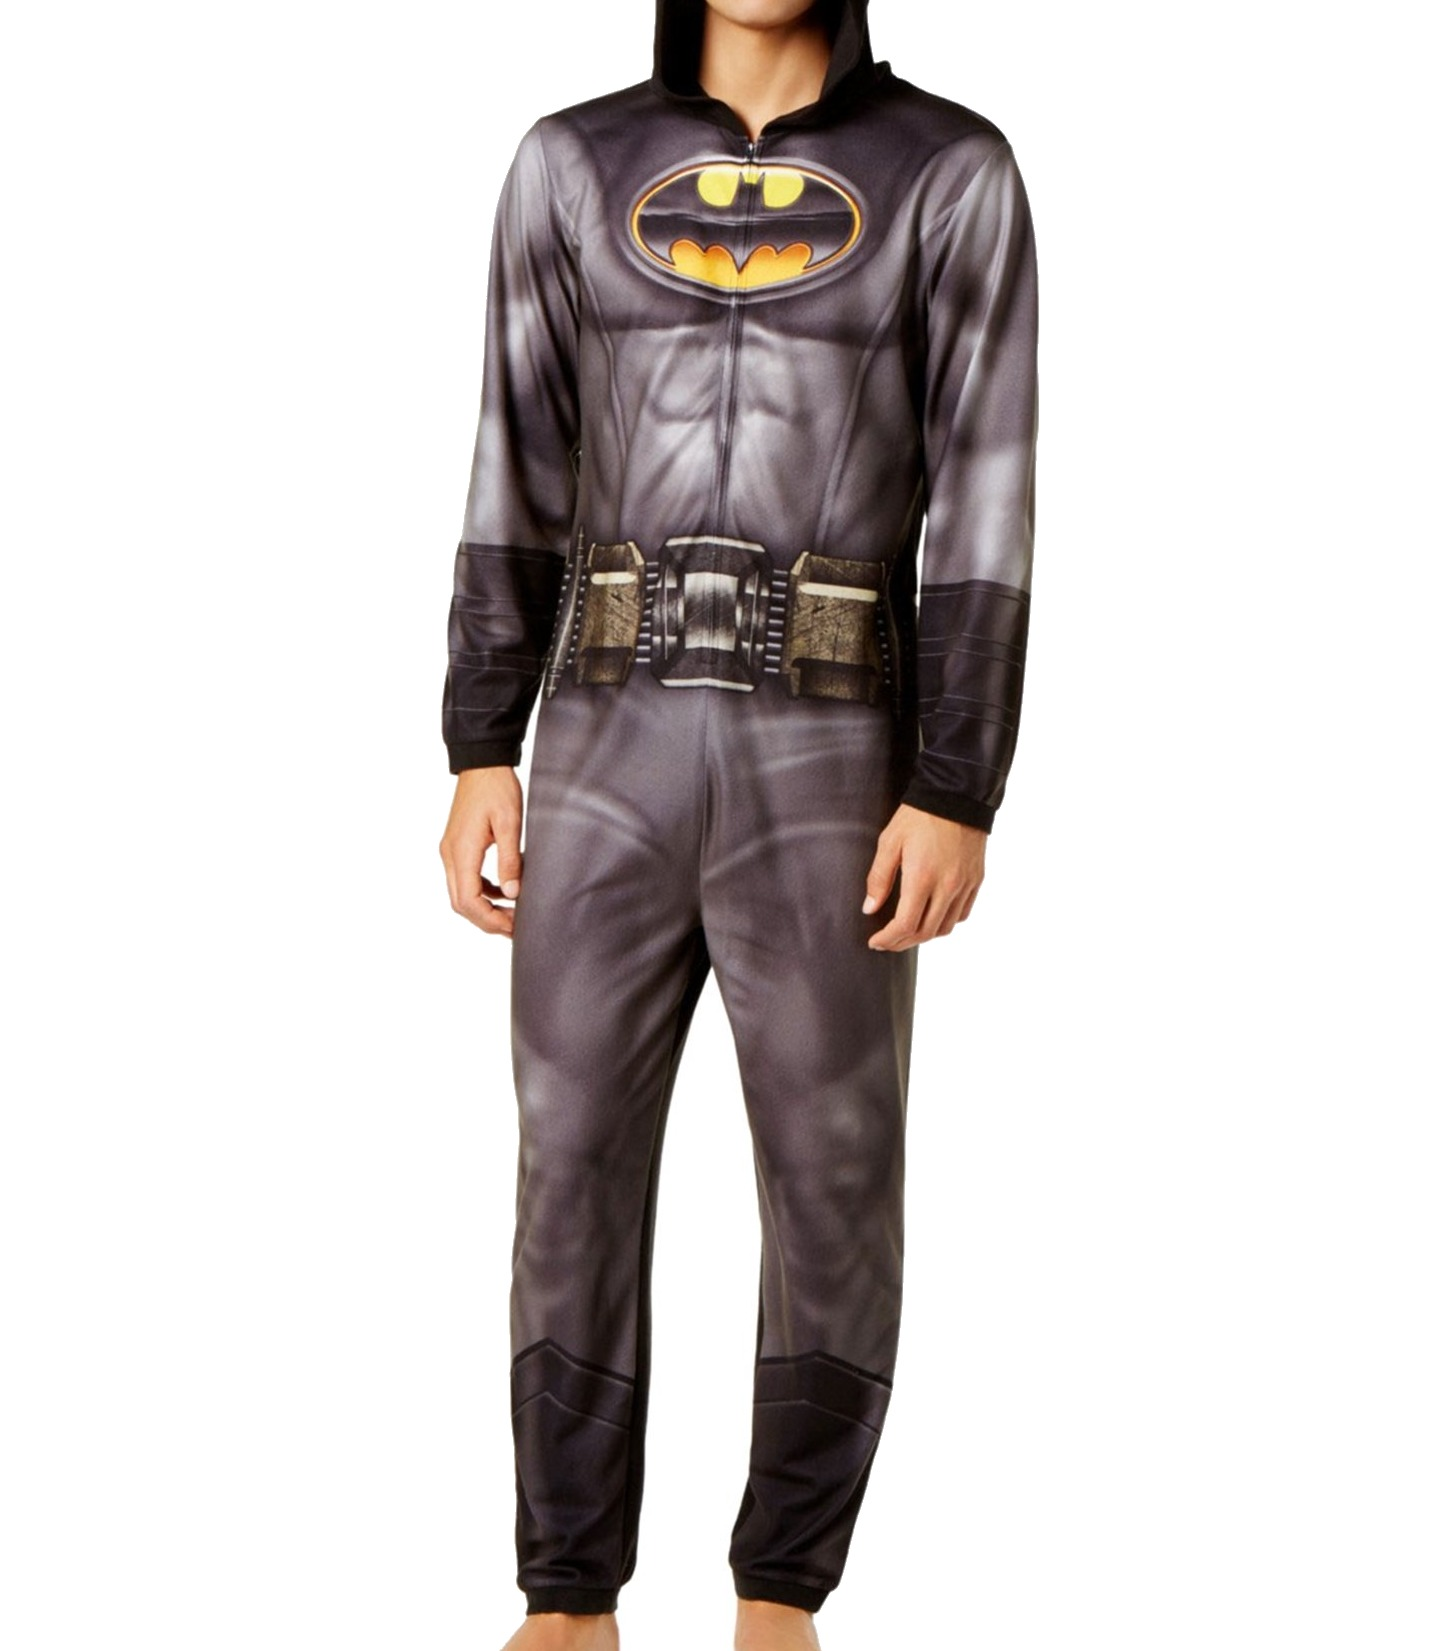 BRIEFLY STATED NEW Black Mens Large L Batman Hooded Footed Pajamas  70-  082 720b58276d8e